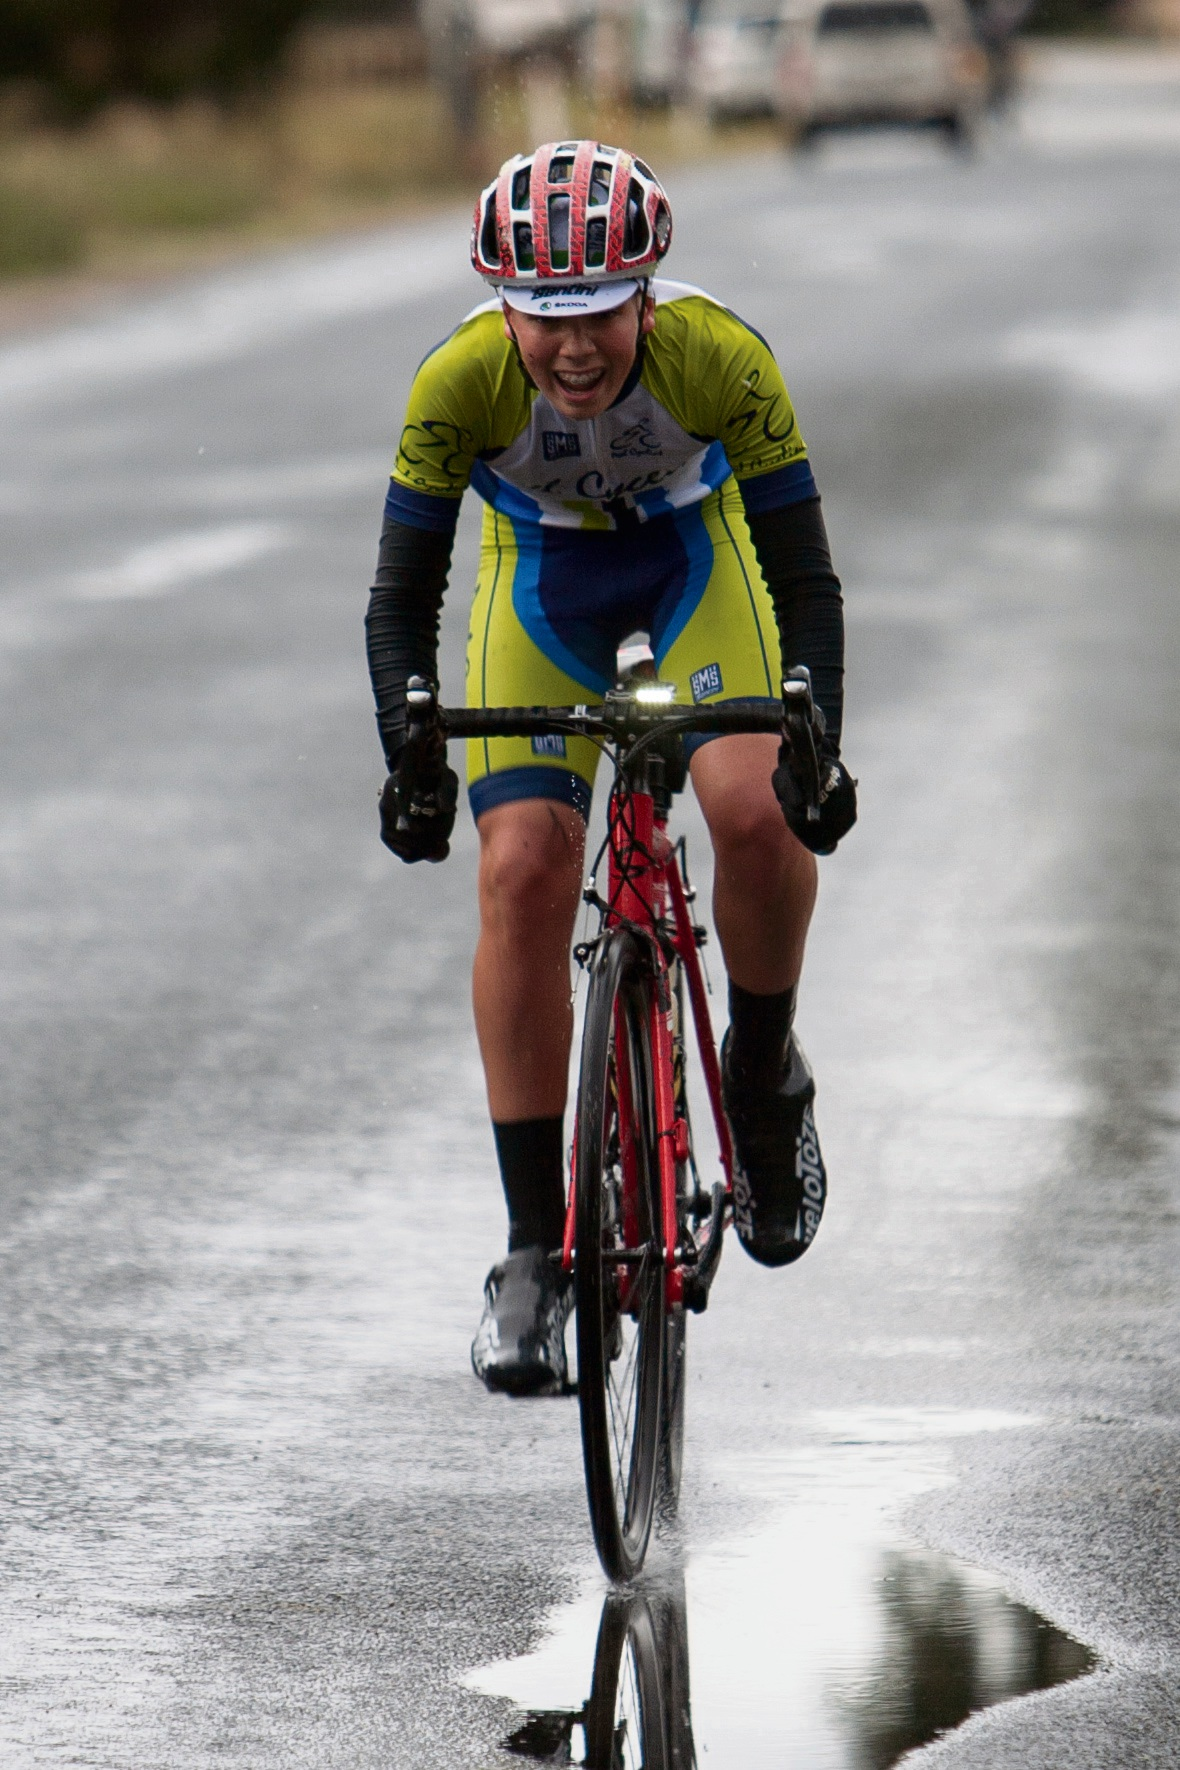 Calum Milne battled the elements to finish the race. Picture: Nick Cowie